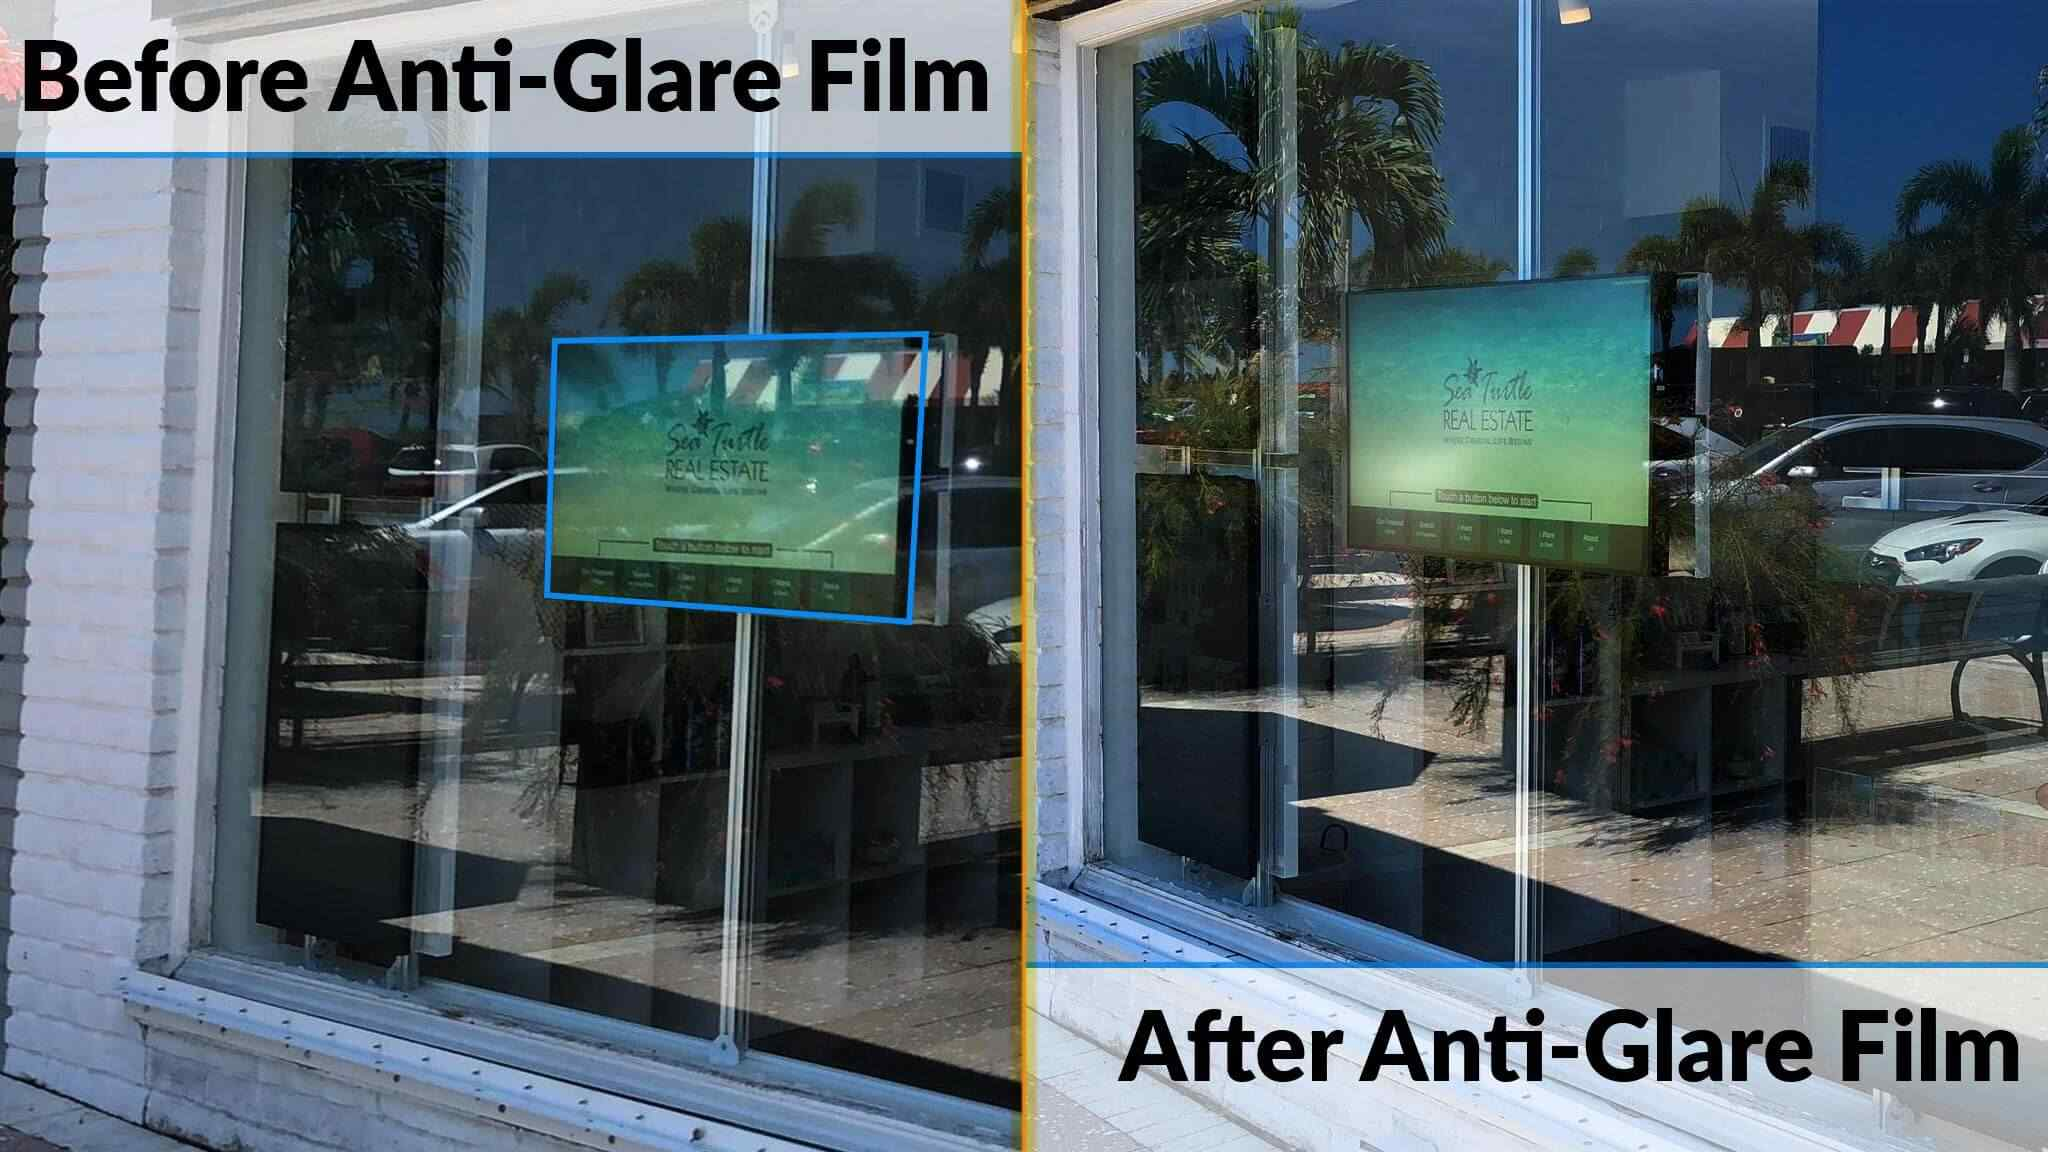 Anti Glare Film For Digital Displays Behind Glass With Glare Problems